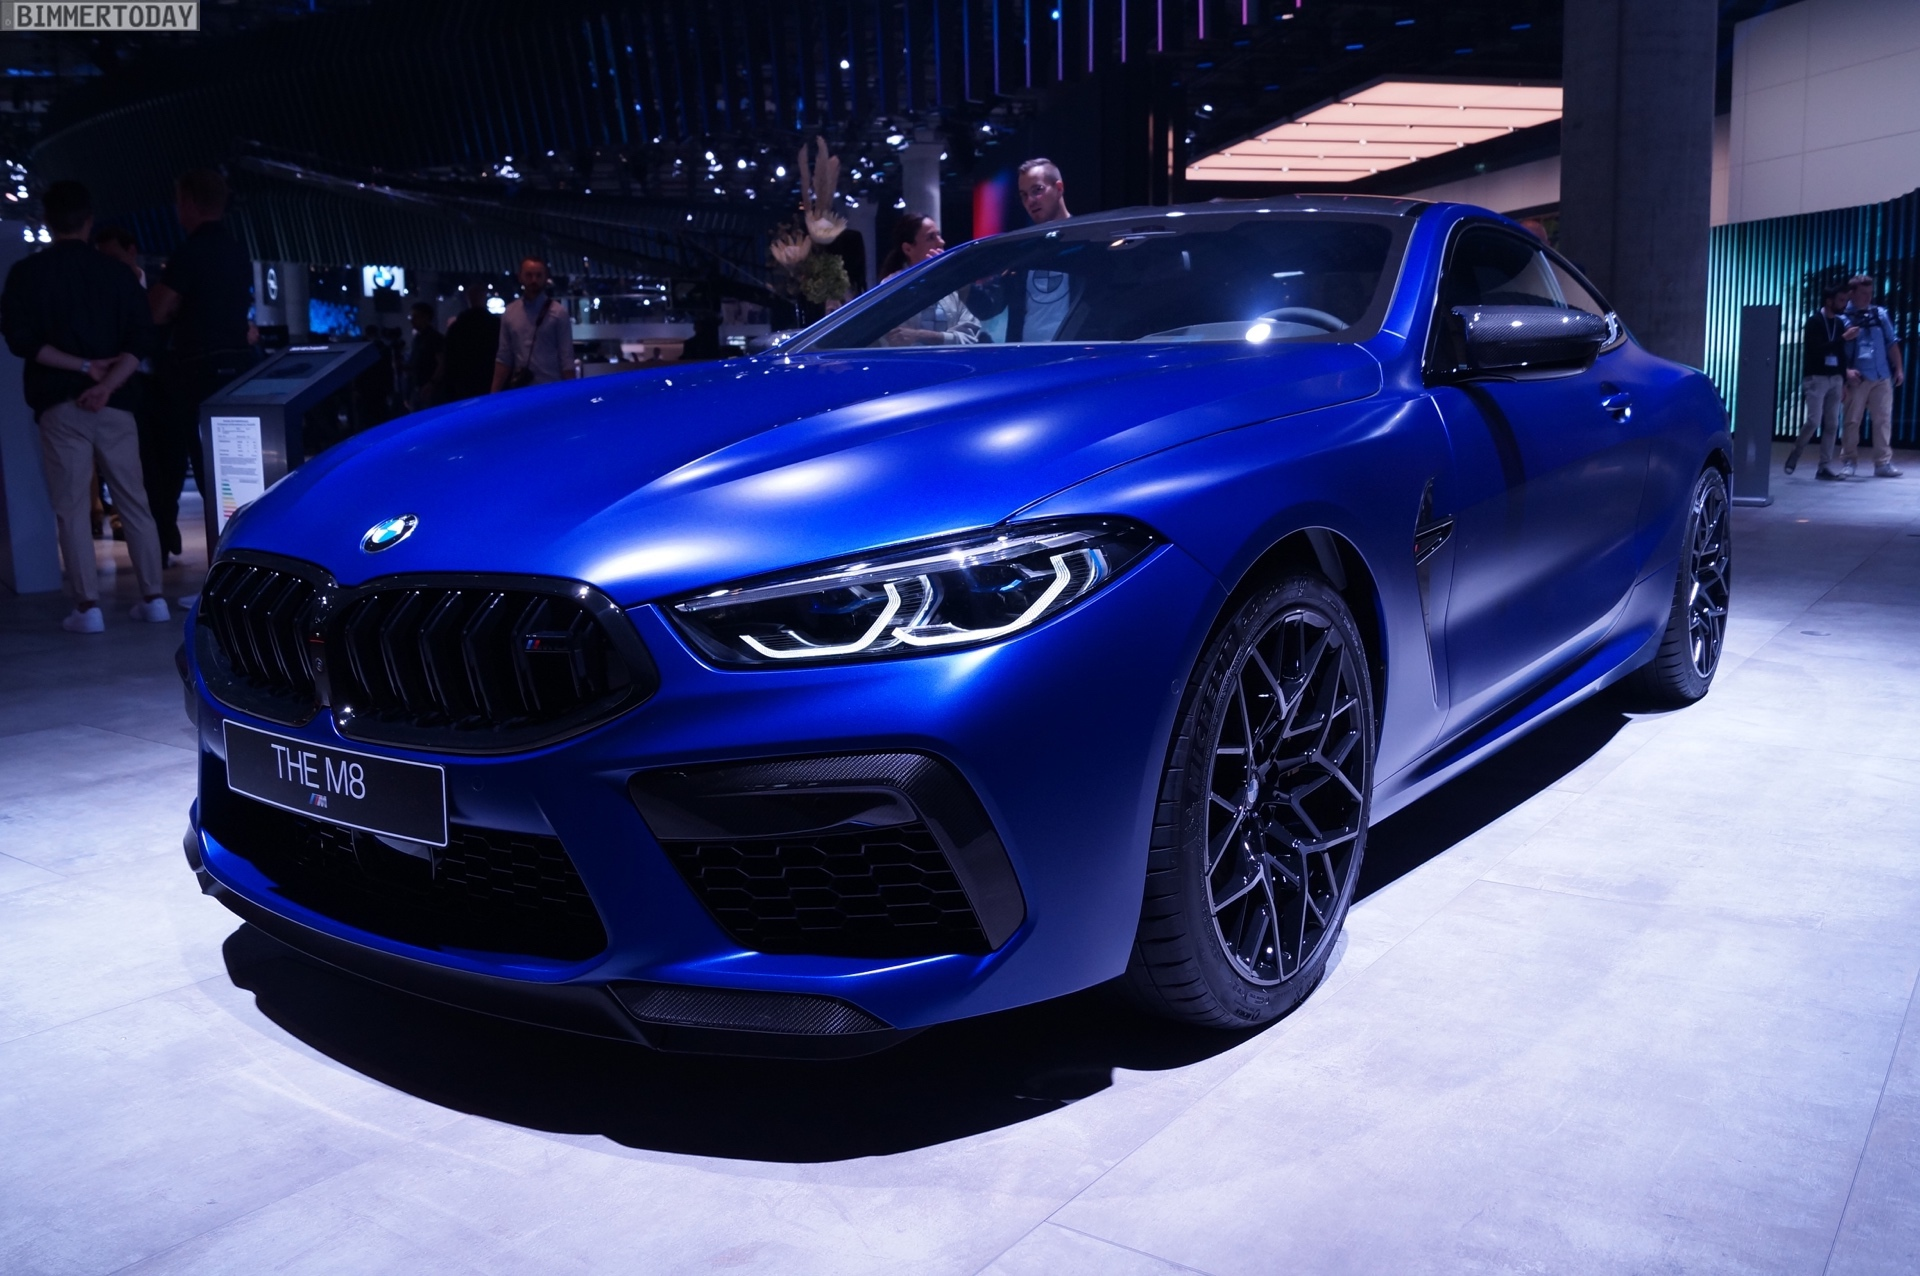 Iaa 2019 Bmw M8 Competition In Frozen Marina Bay Blue